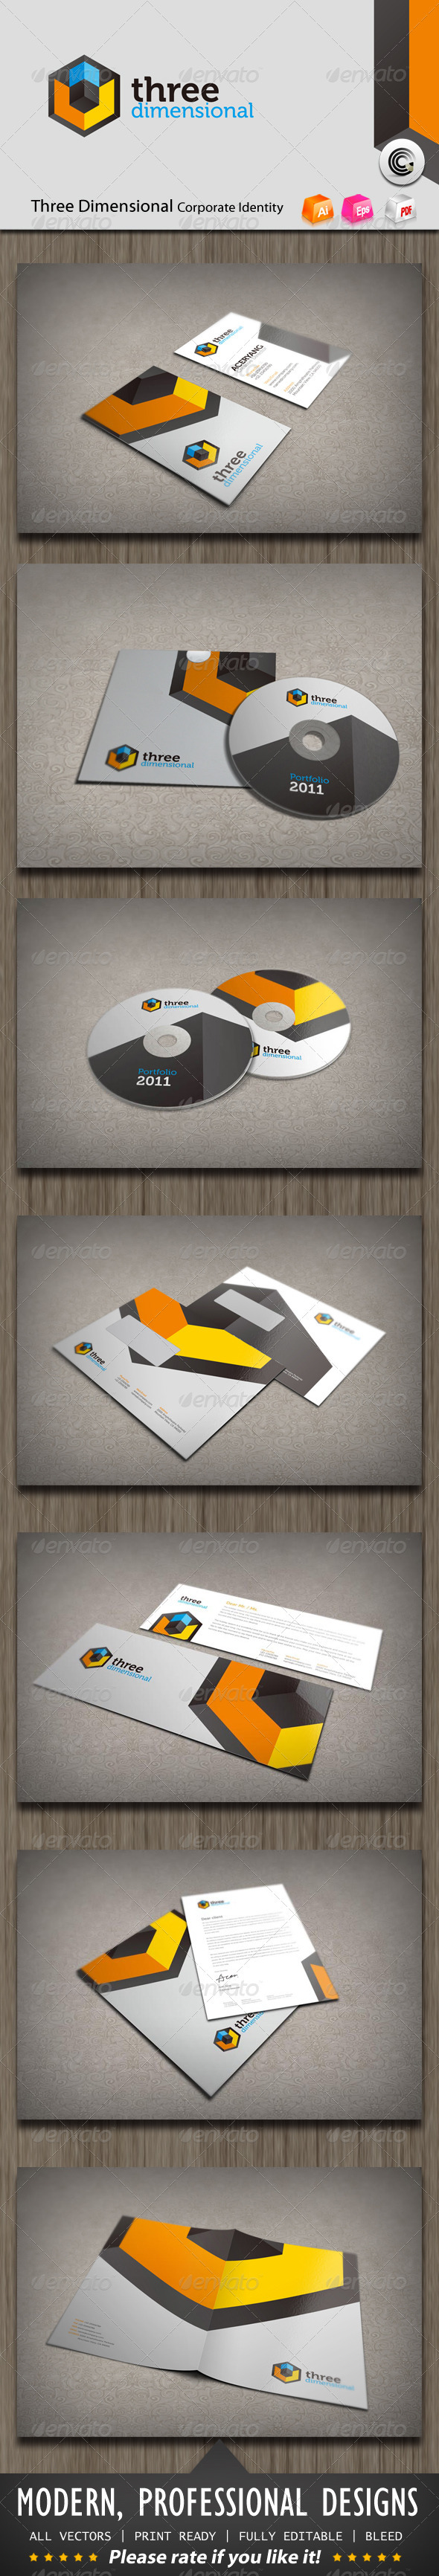 Three Dimensional Corporate Identity - Stationery Print Templates